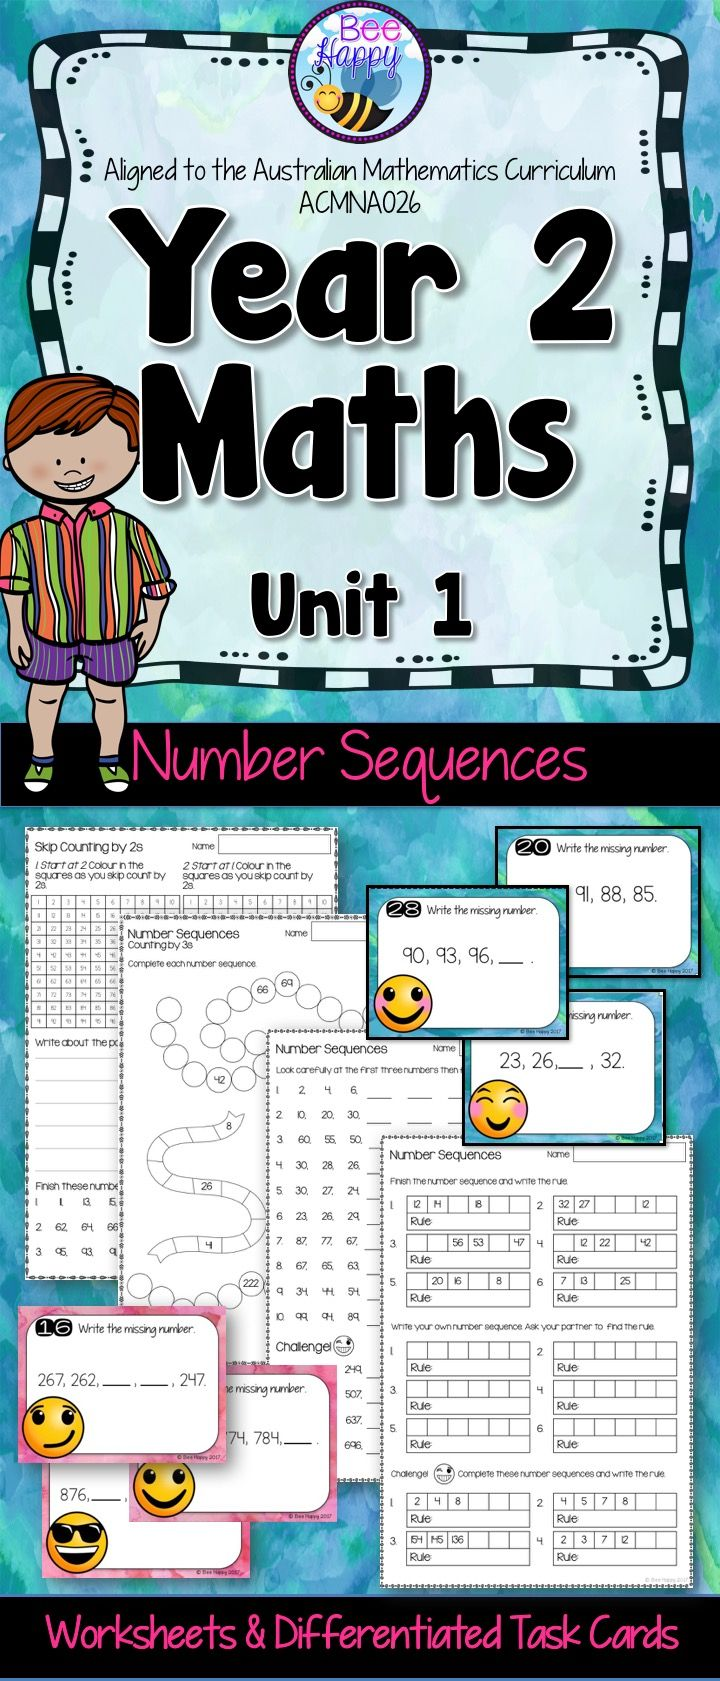 These worksheets and task cards cover number patterns in two levels. The resource presents sequences using numbers to 100, initially those increasing by twos, threes, fives and tens, then moving to other sequences and numbers to 1,000.